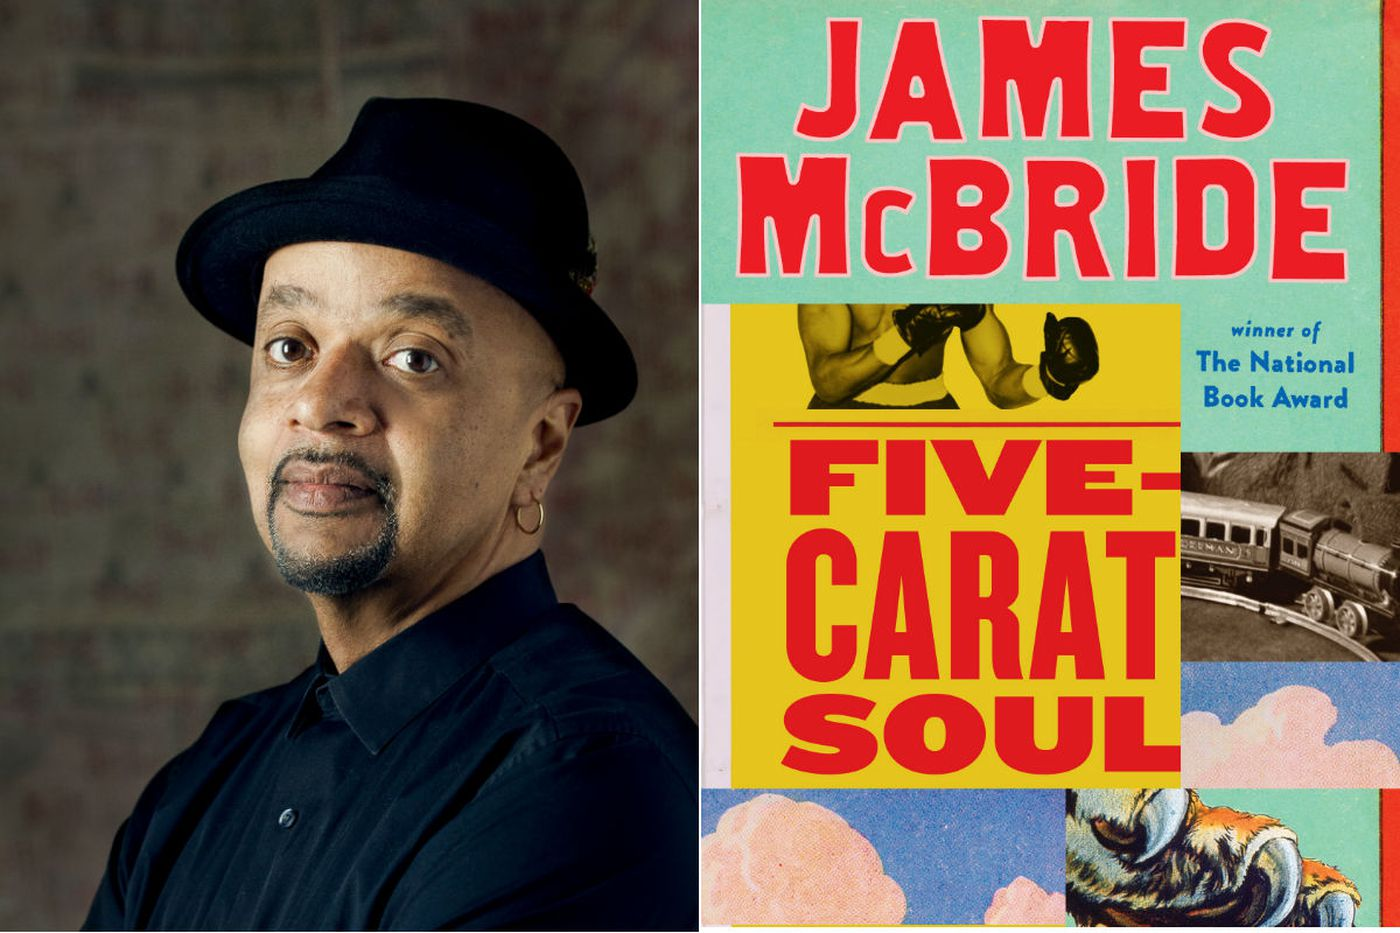 James McBride's 'Five-Carat Soul' crackles with the master's energy